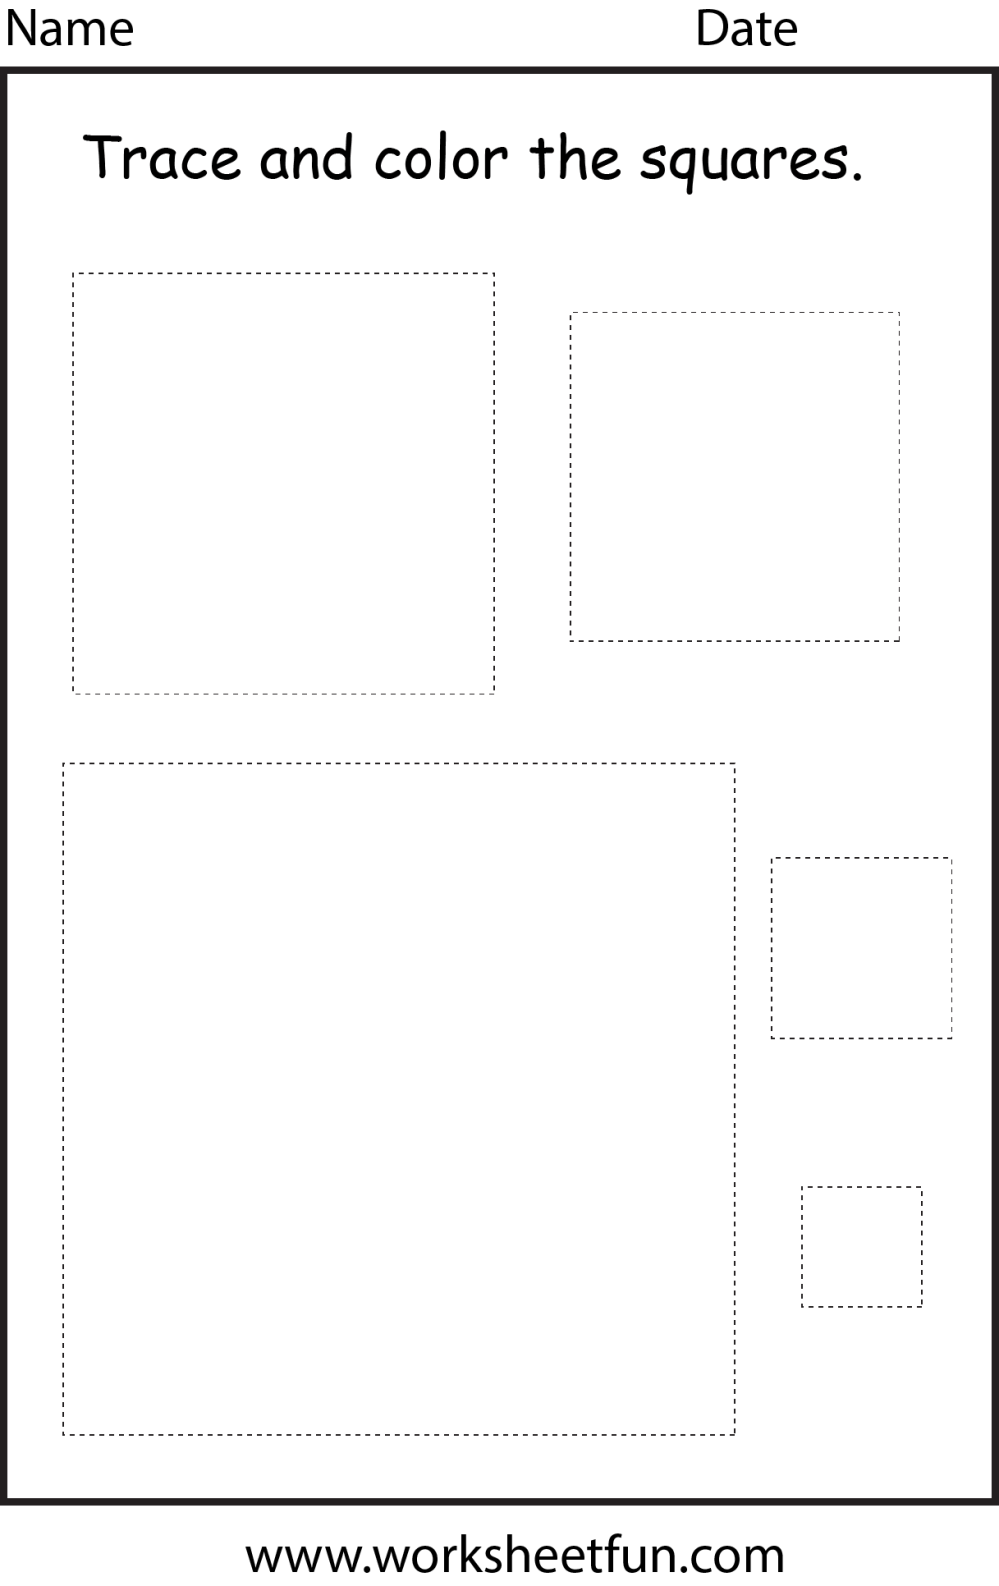 medium resolution of Pin By Nellene On Author's Purpose Worksheet   Geometry Worksheets on Best  Worksheets Collection 8106